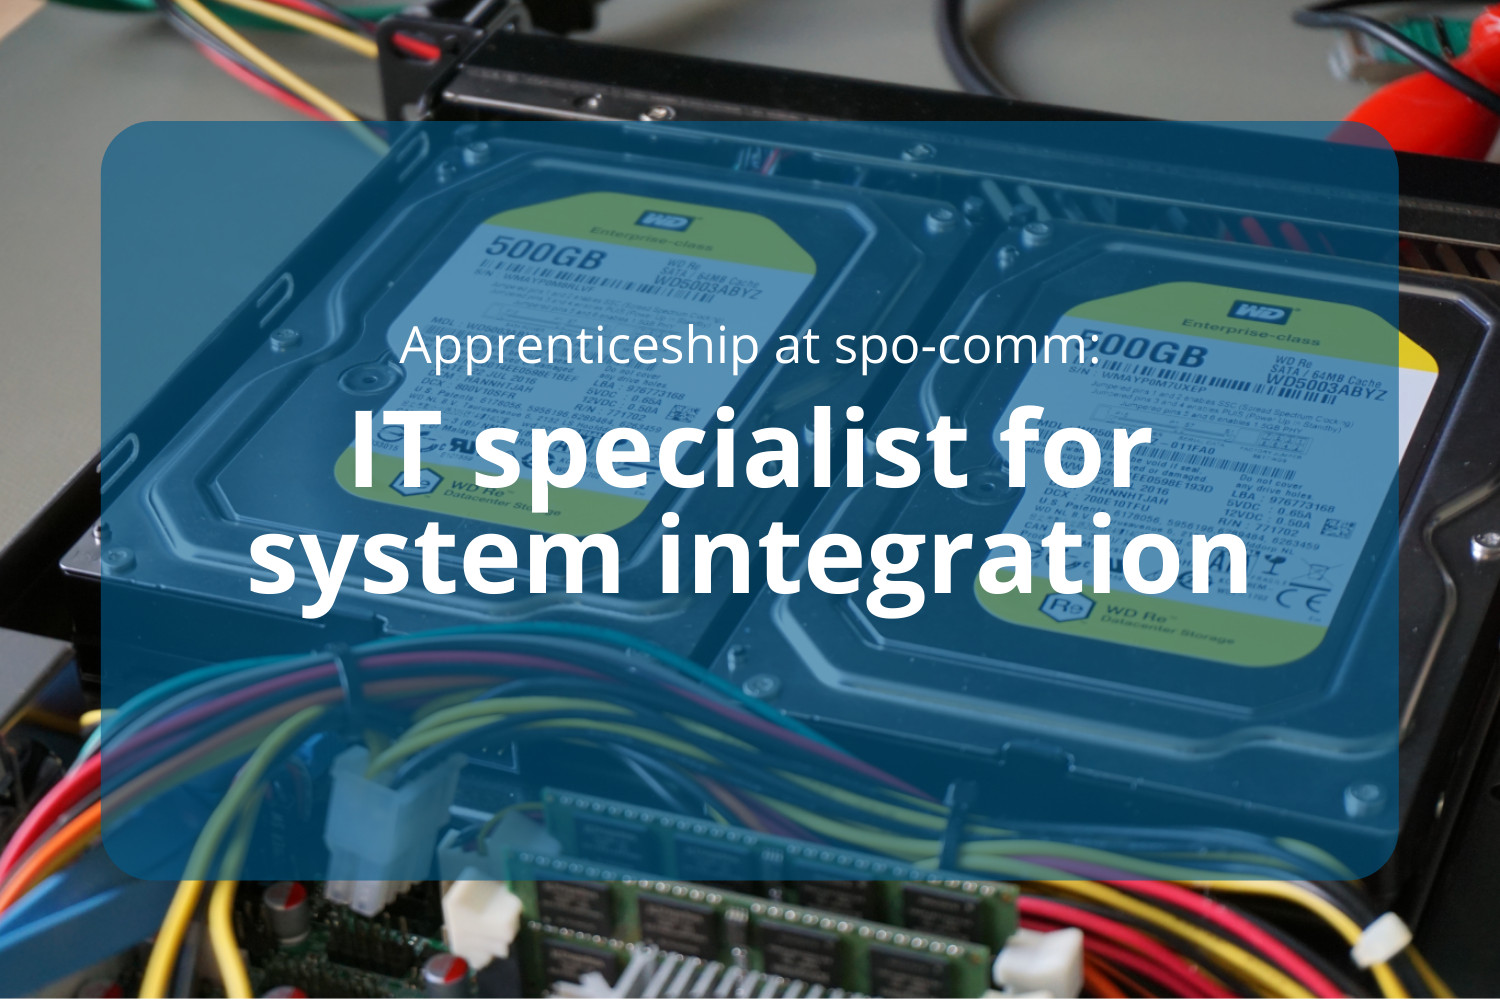 Apprenticeship as an IT specialist for system integration at spo-comm